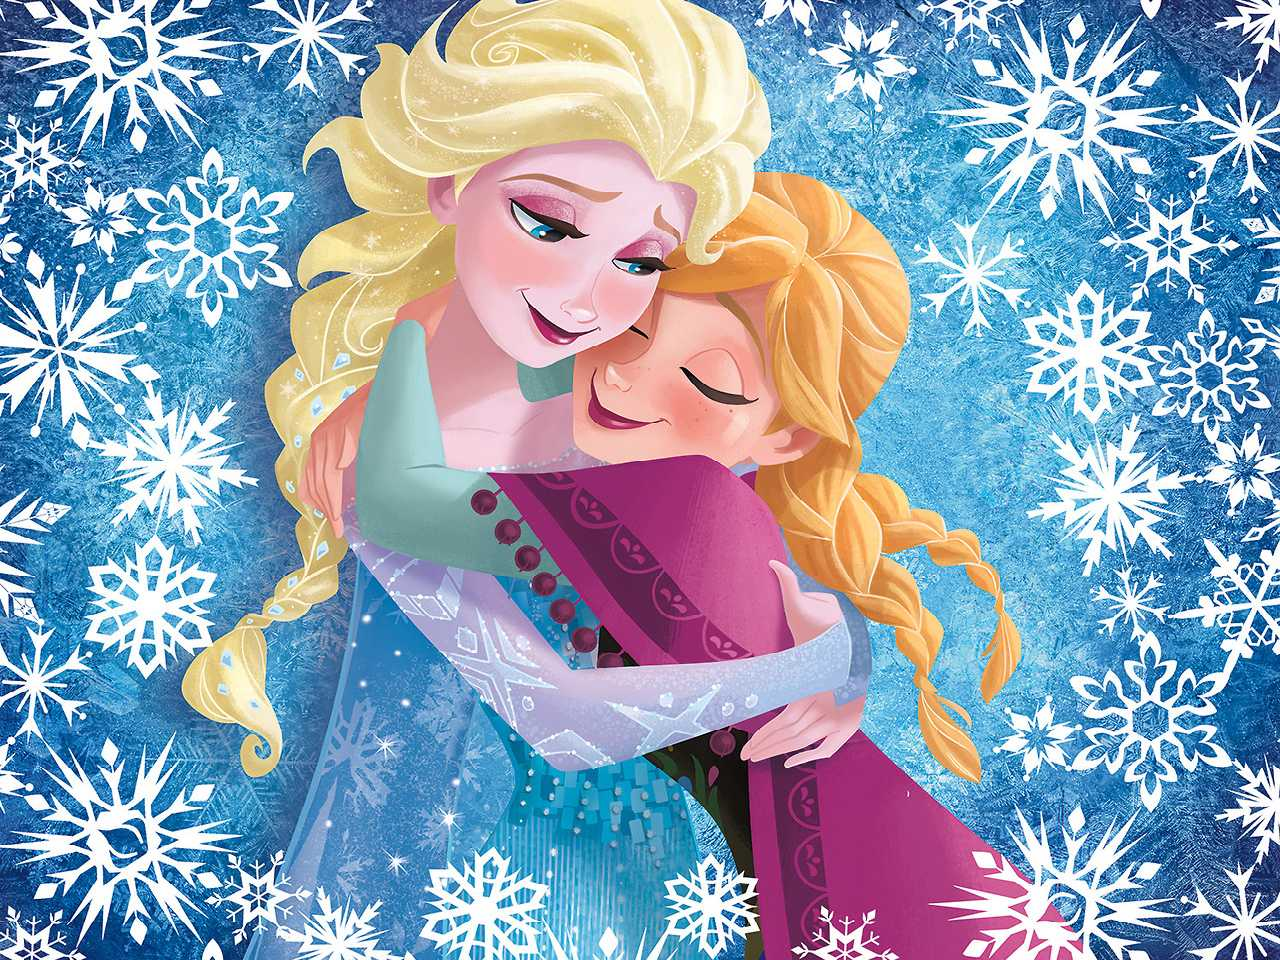 elsa and anna wallpapers,cartoon,illustration,fictional character,doll